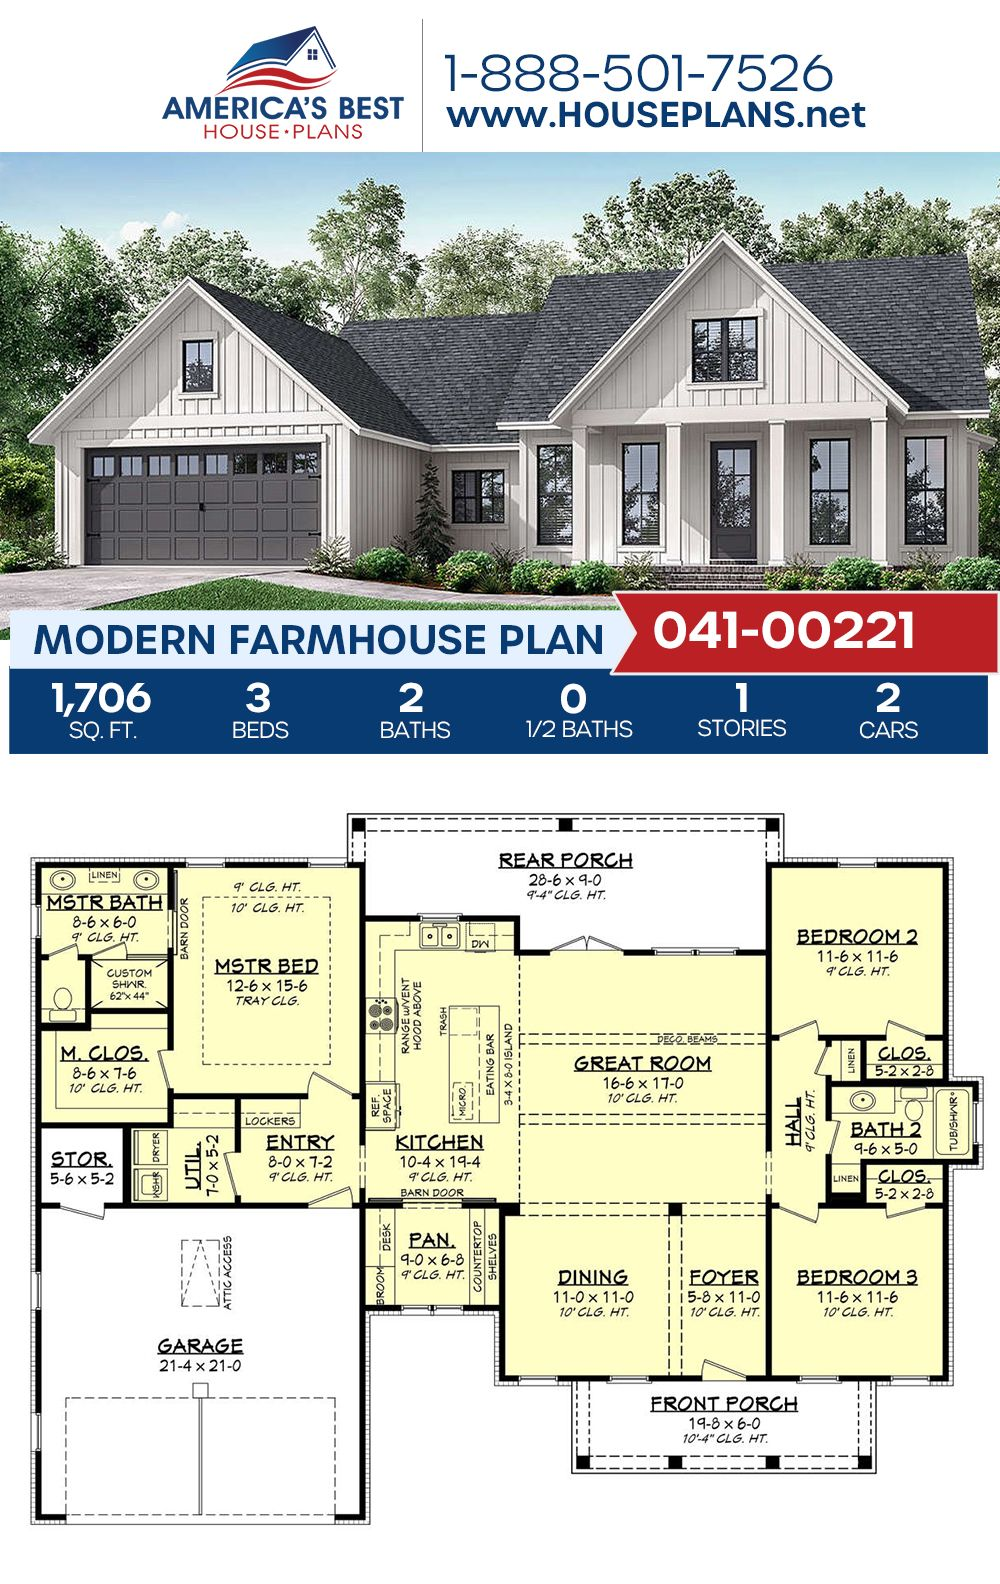 House Plan 041 00221 Modern Farmhouse Plan 1 706 Square Feet 3 Bedrooms 2 Bathrooms Modern Farmhouse Plans House Plans Farmhouse Craftsman House Plans